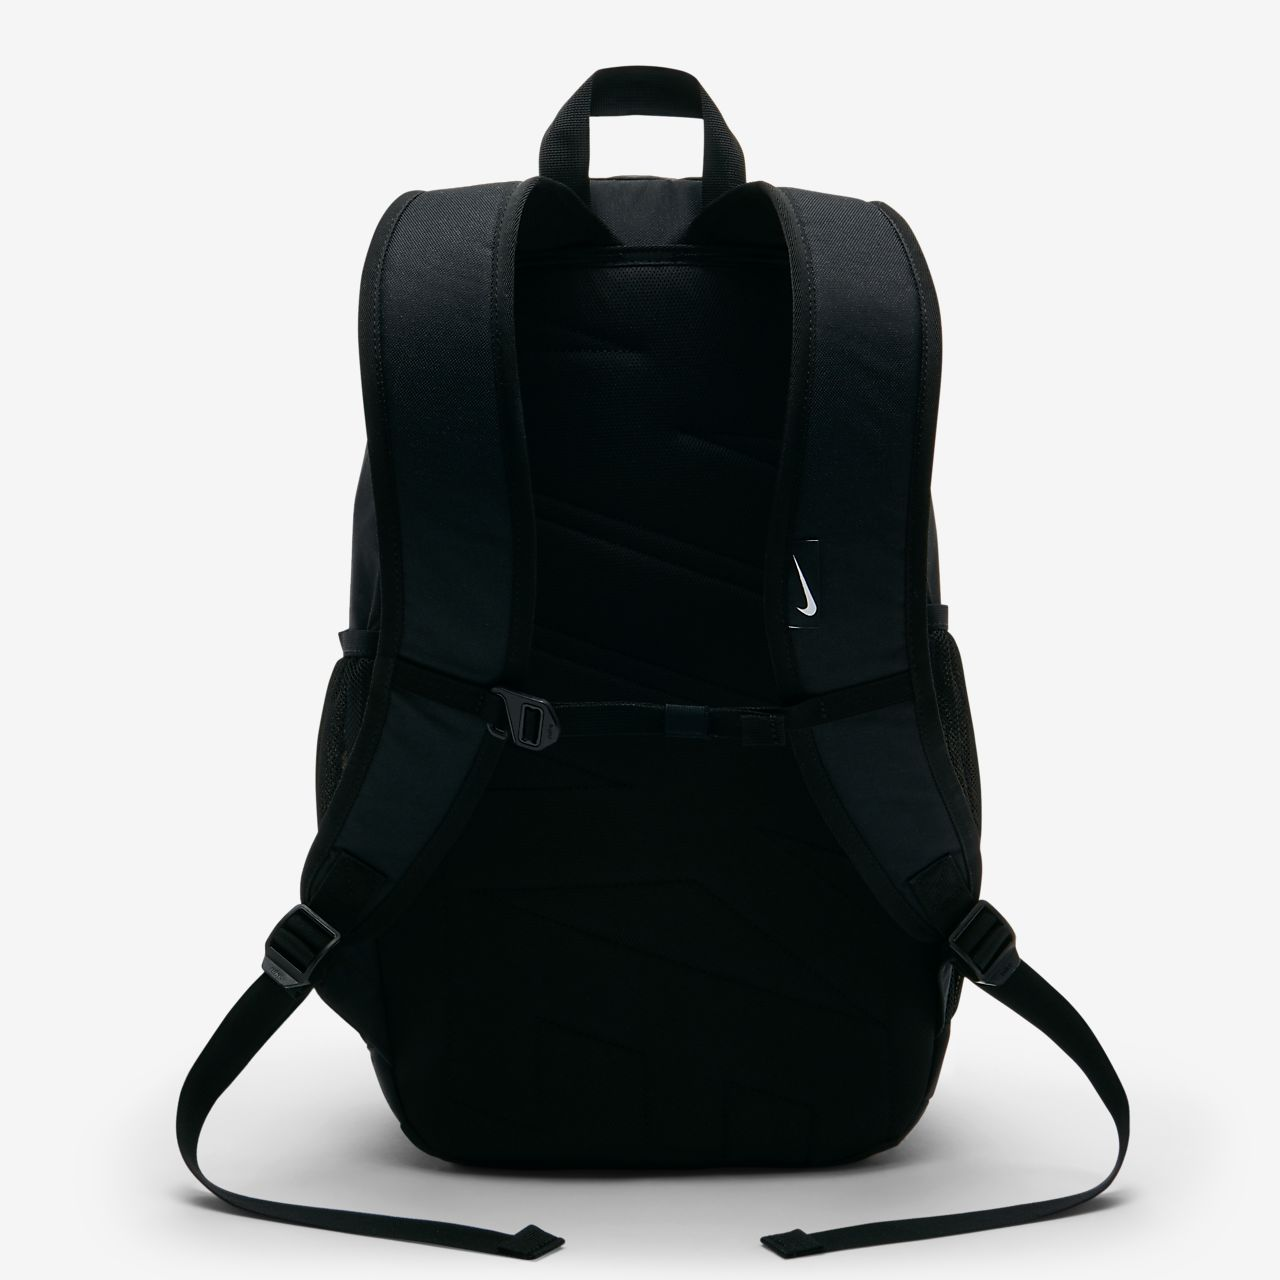 Low Resolution Nike Academy Football Backpack Nike Academy Football Backpack c3f647021acc4